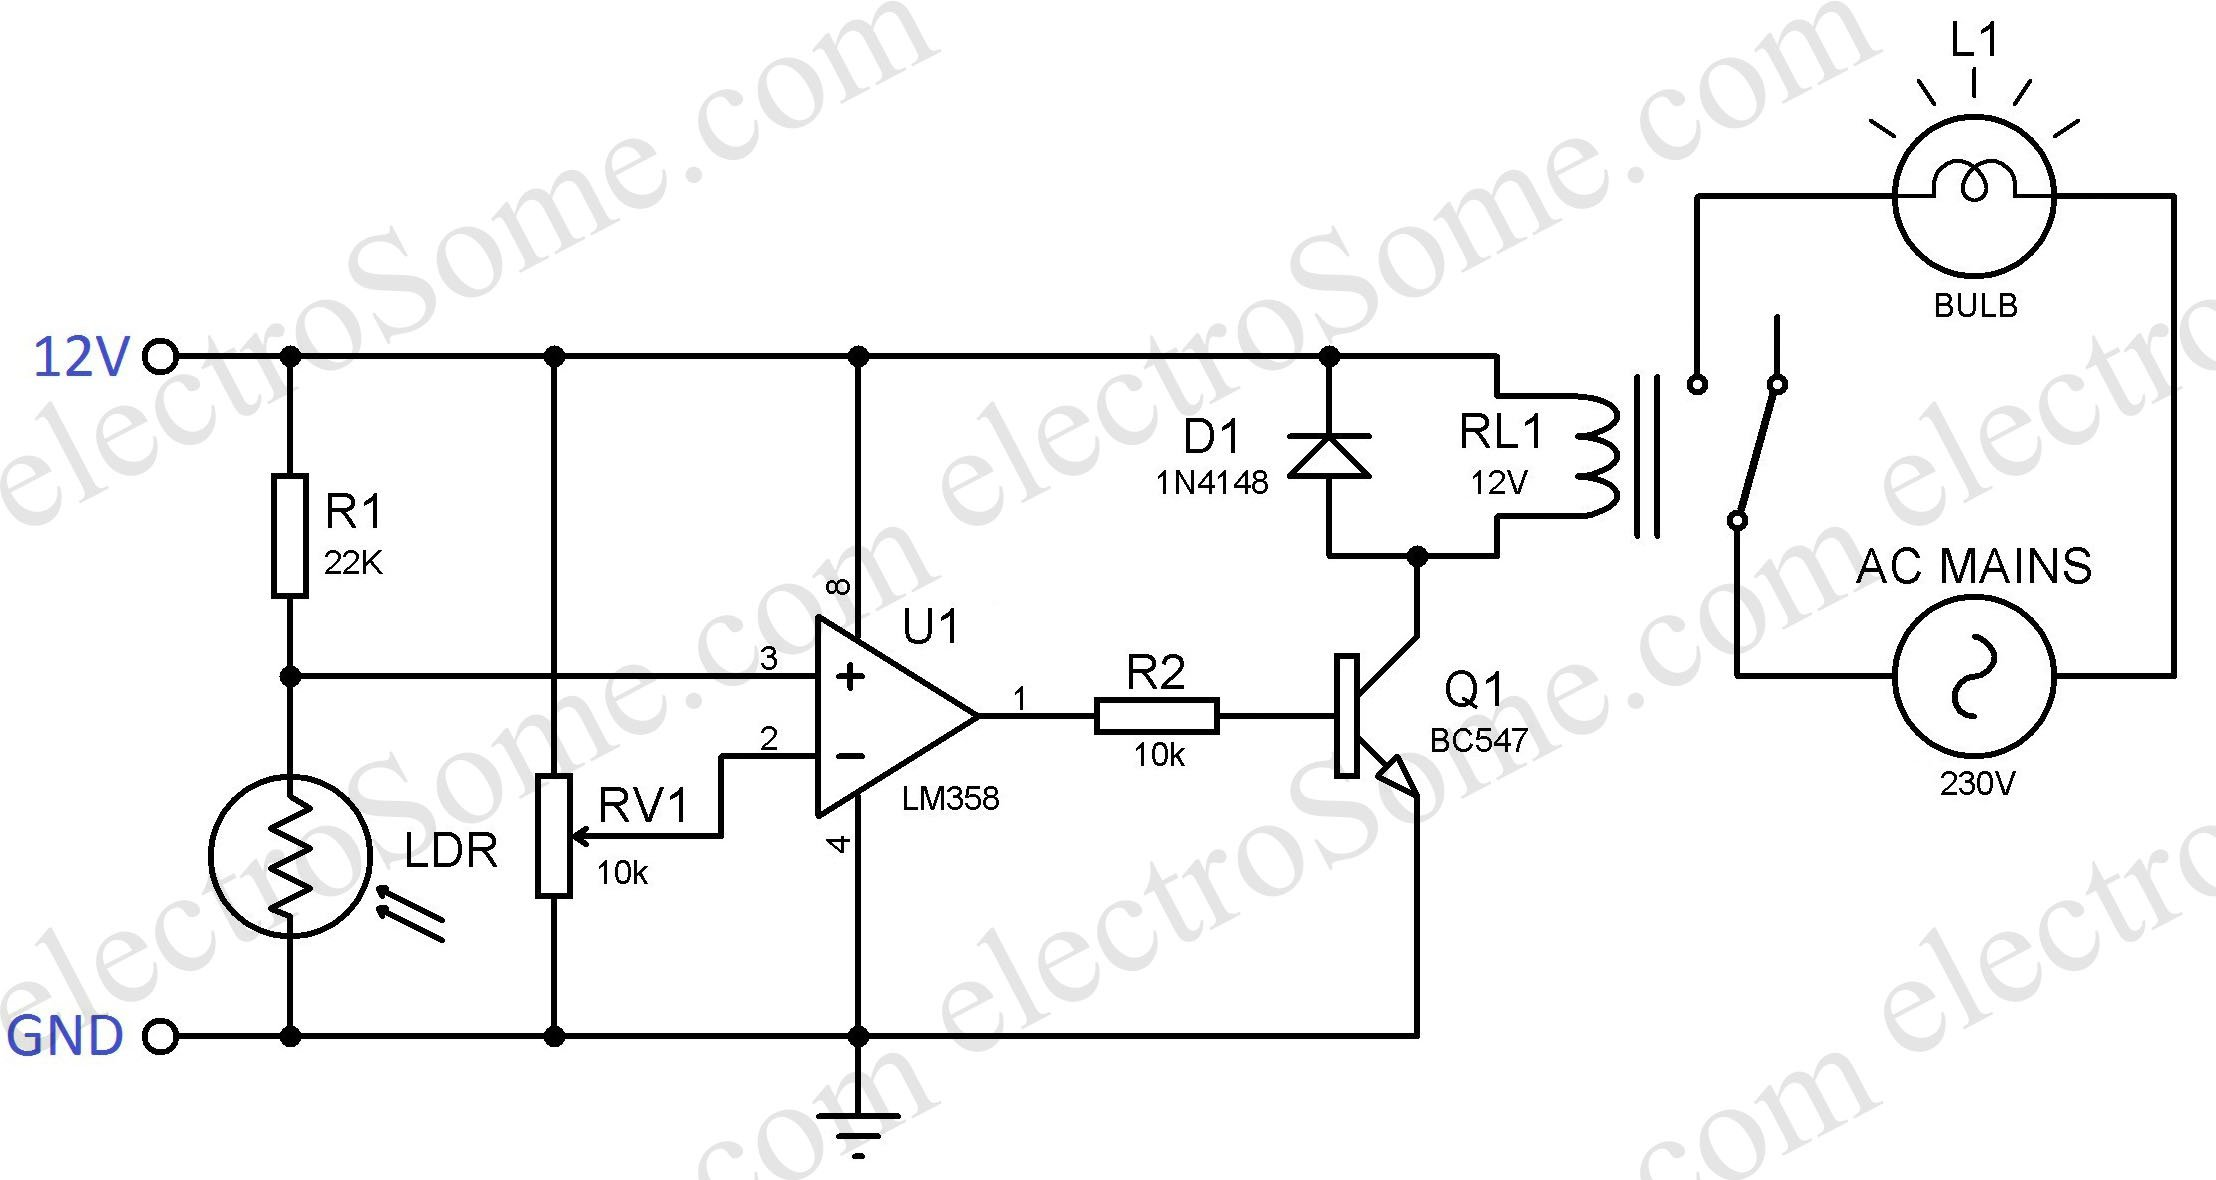 Automatic Night Lamp Circuit Diagram automatic night lamp using ldr day night sensor wiring diagram at panicattacktreatment.co